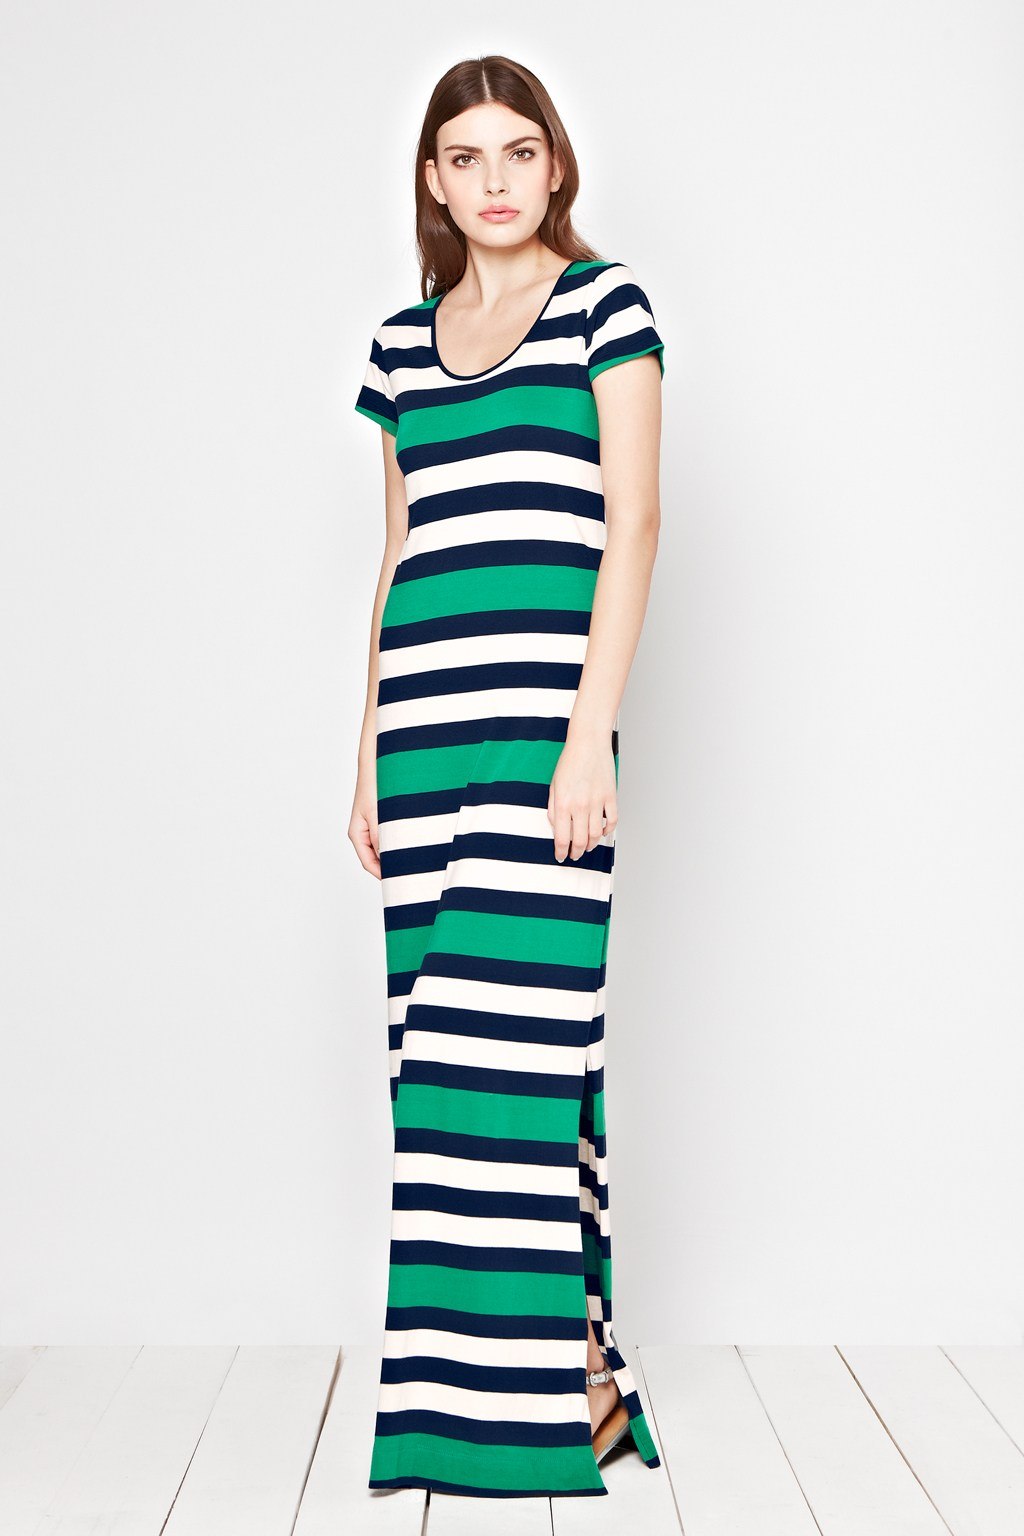 Great Plains Jolly Roger Maxi Dress